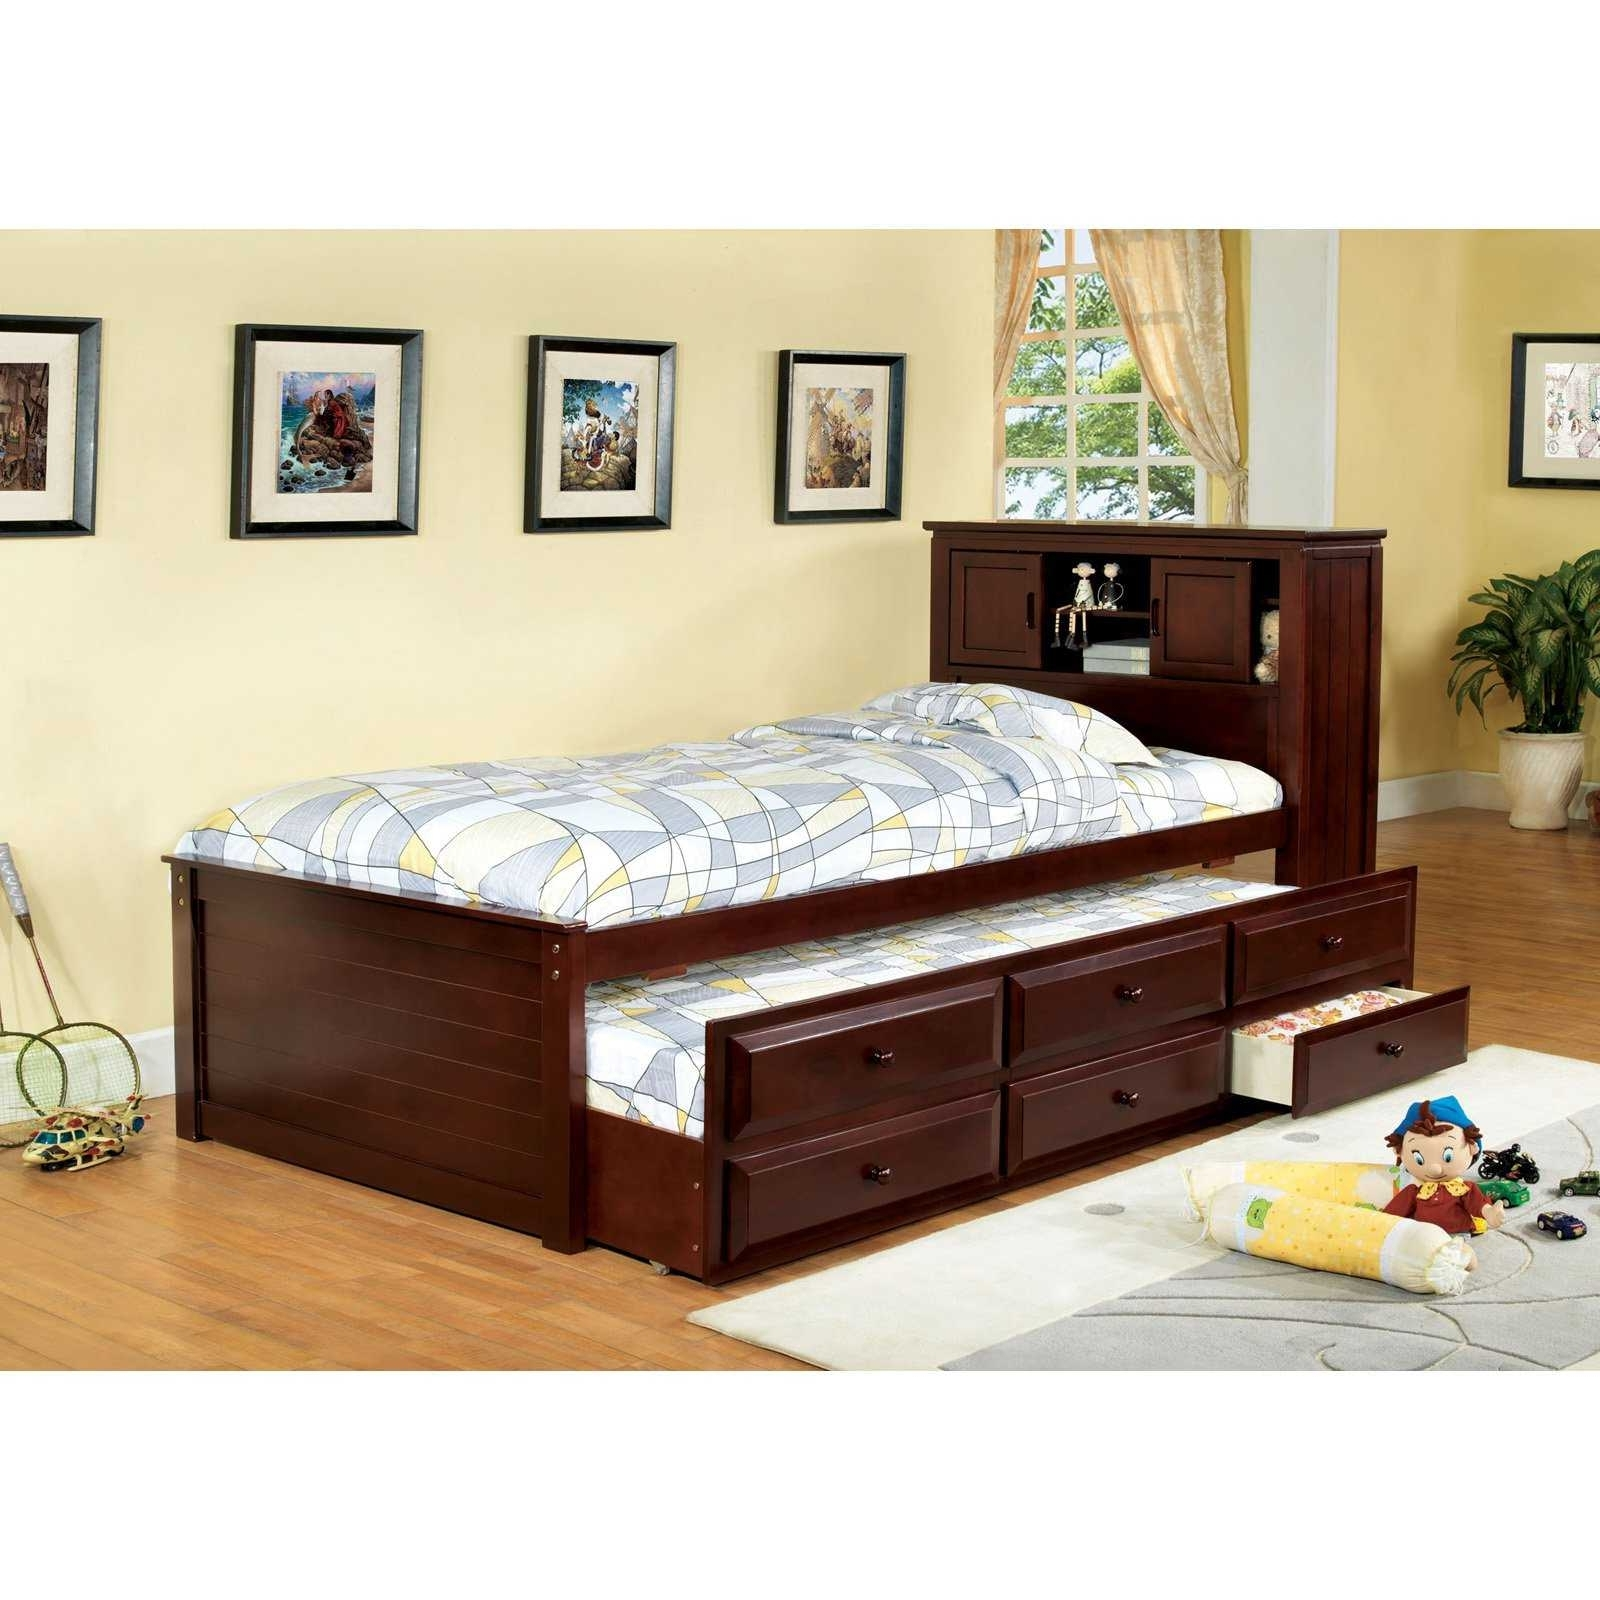 Twin Bed With Bookcases Headboard Pertaining To 2018 Bookcases Ideas Twin Storage Trends Including Attractive Bed With (View 6 of 15)